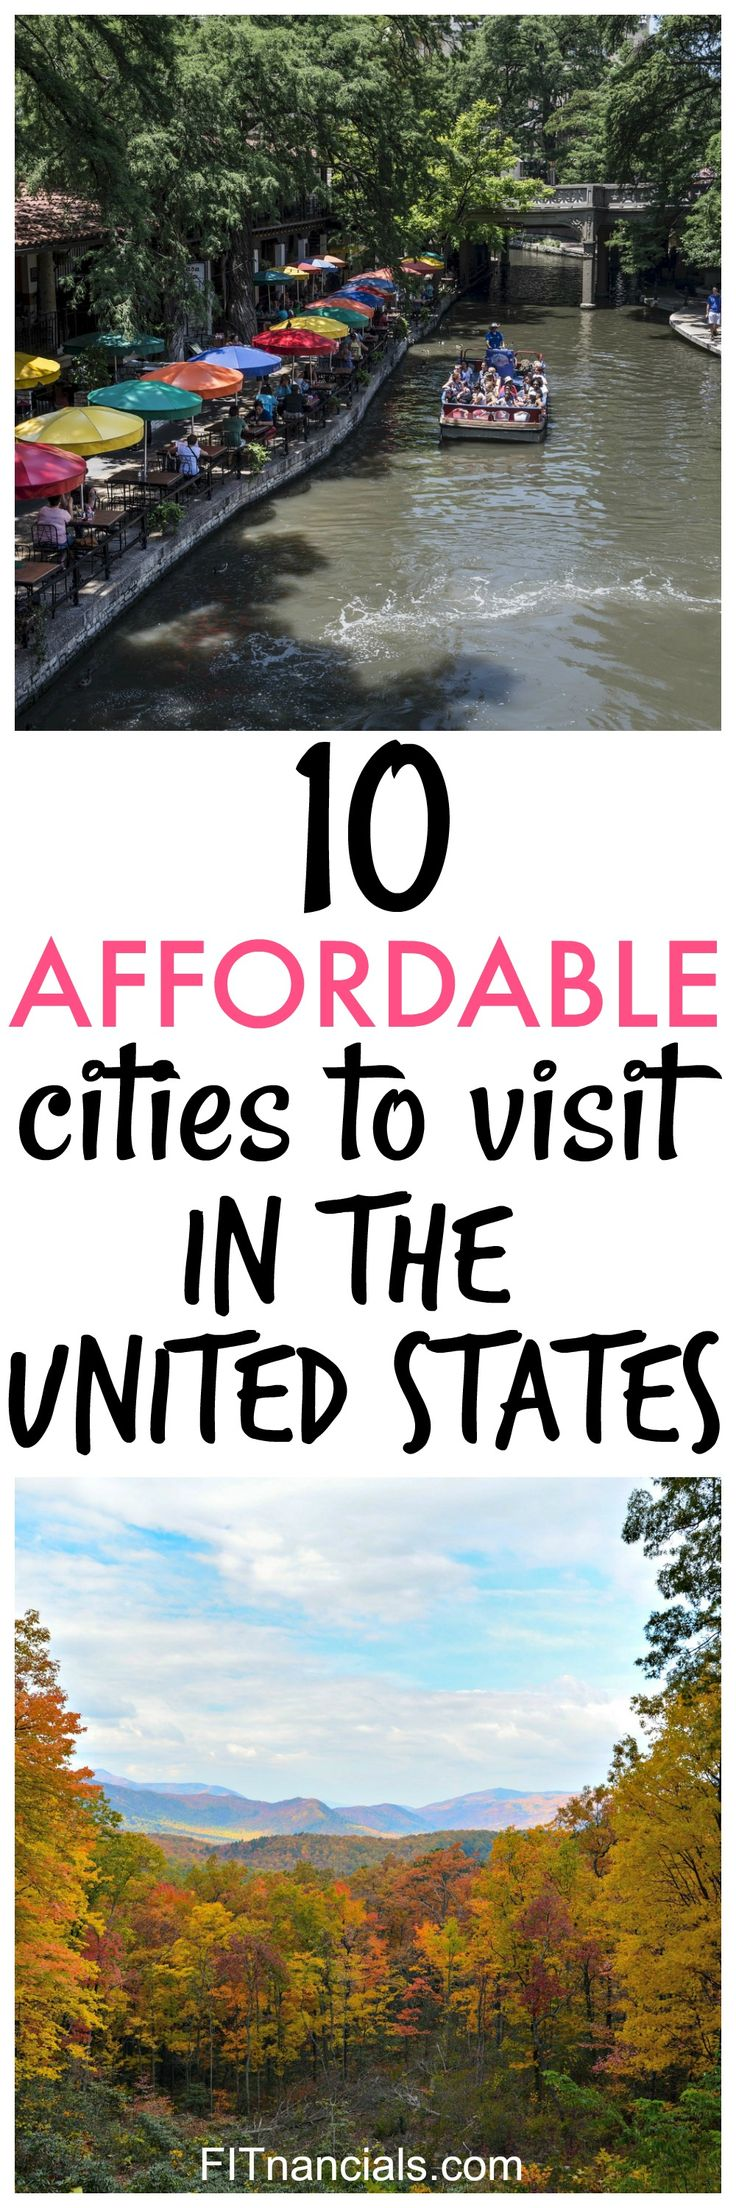 Check out this list of 10 affordable cities to visit in the United States!